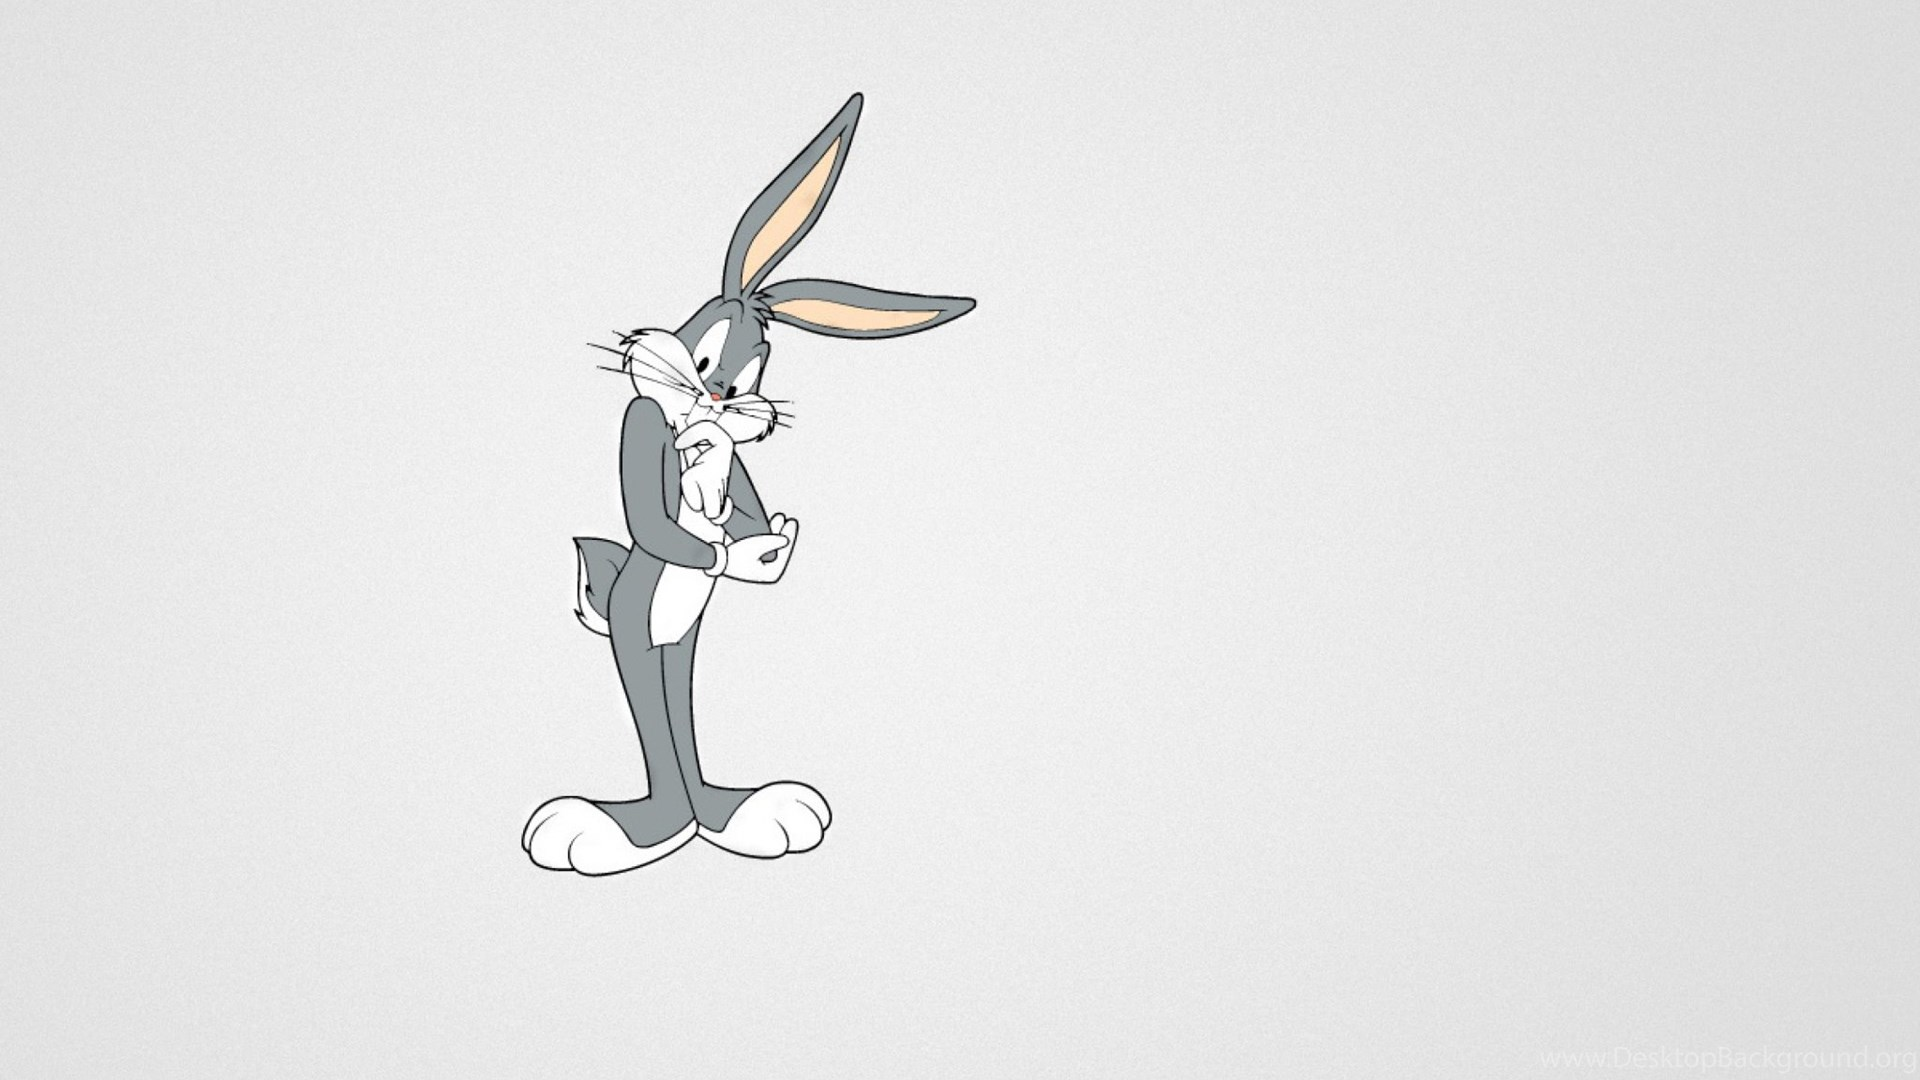 Looney Tunes Bugs Bunny Wallpapers For IPad Air Desktop Background